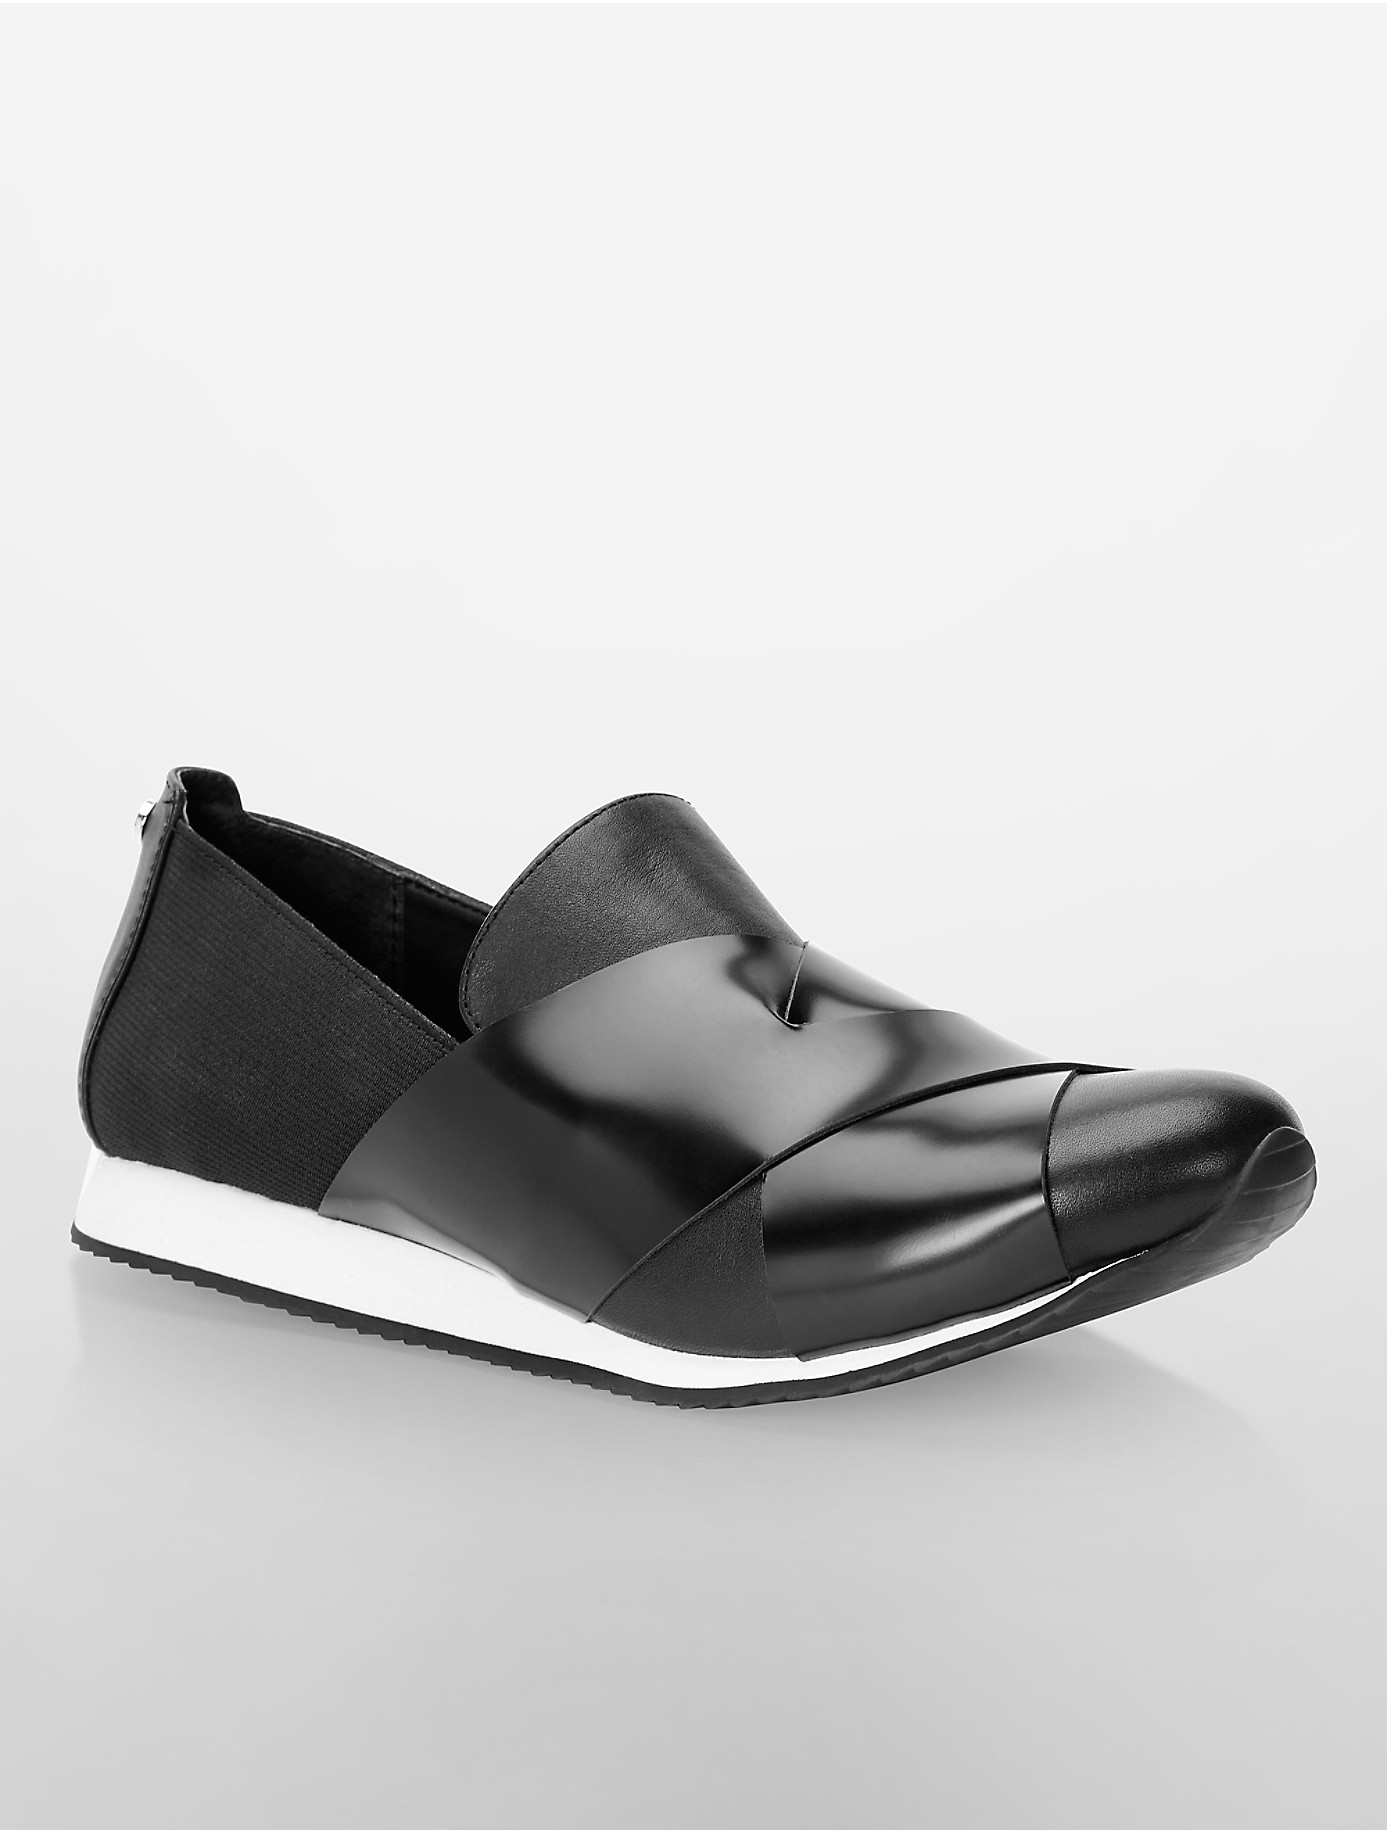 lyst calvin klein white label fox slip on sneaker in black. Black Bedroom Furniture Sets. Home Design Ideas